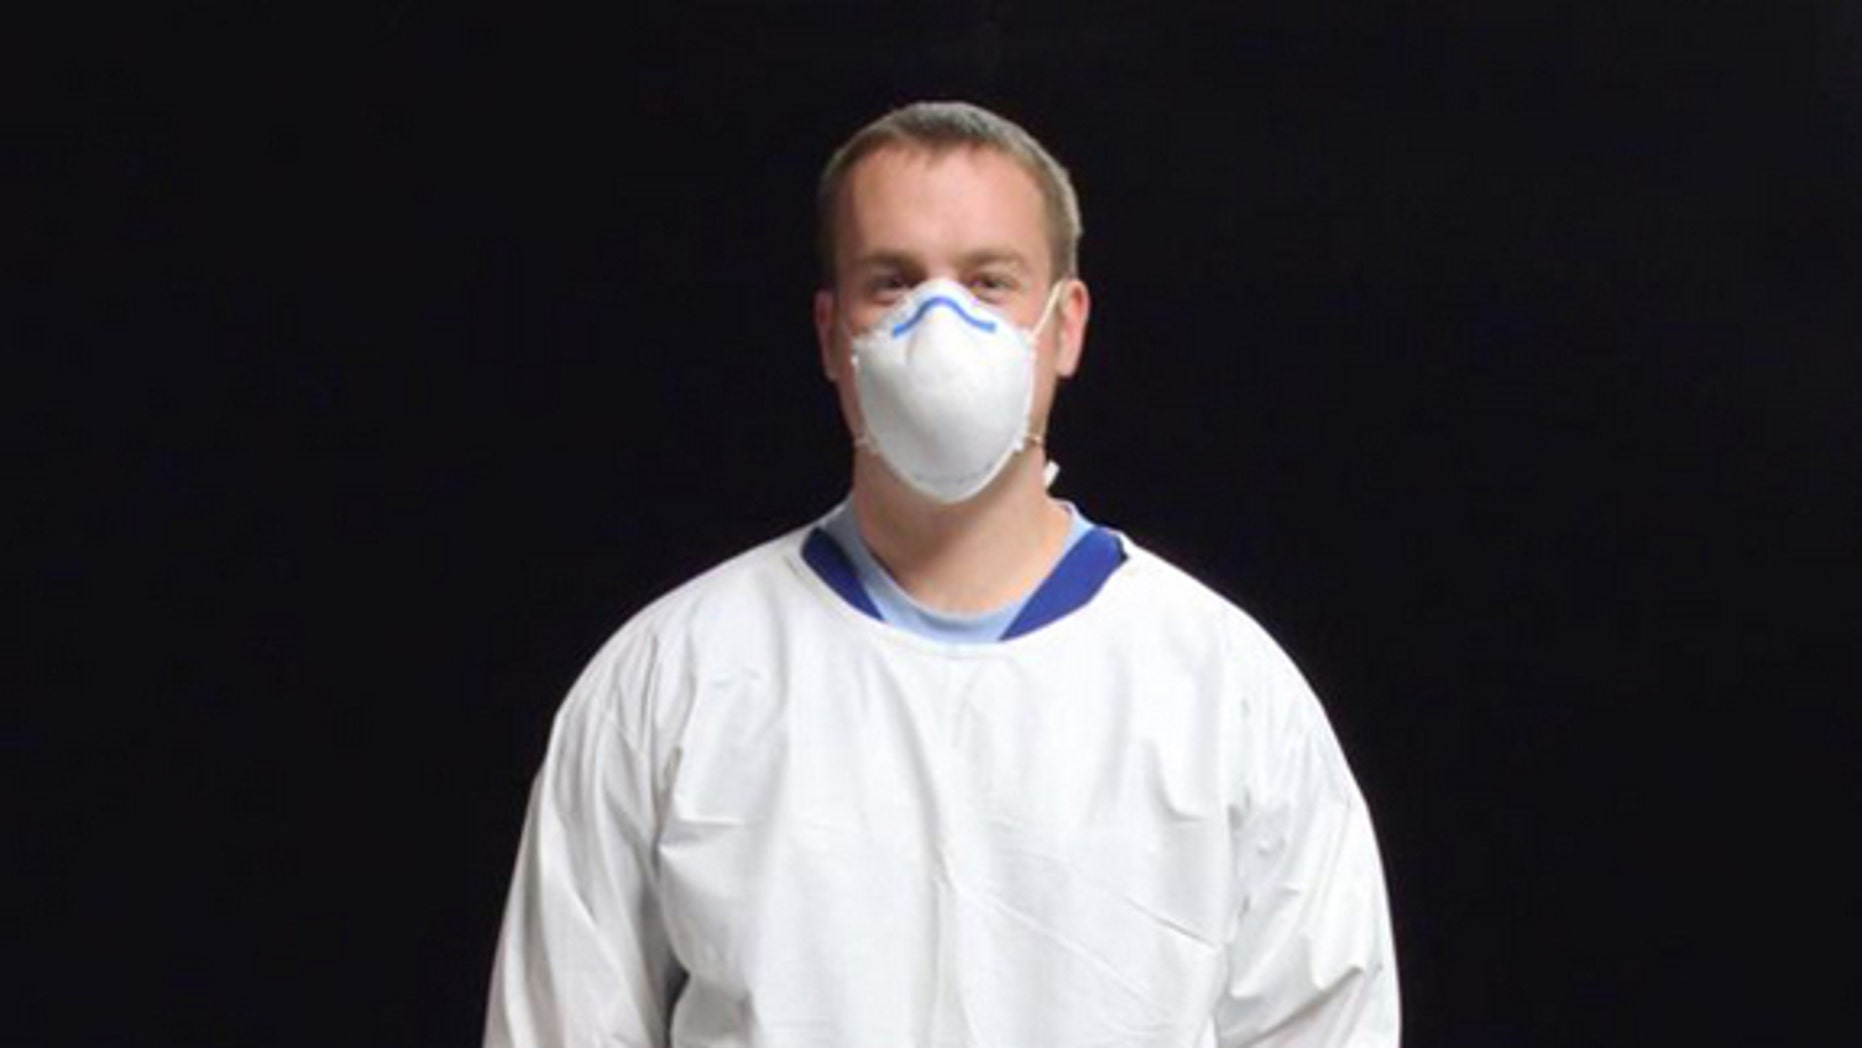 When it comes to preventing flu spread, especially during a pandemic, wearing face masks like this one could be medically and economically effective.